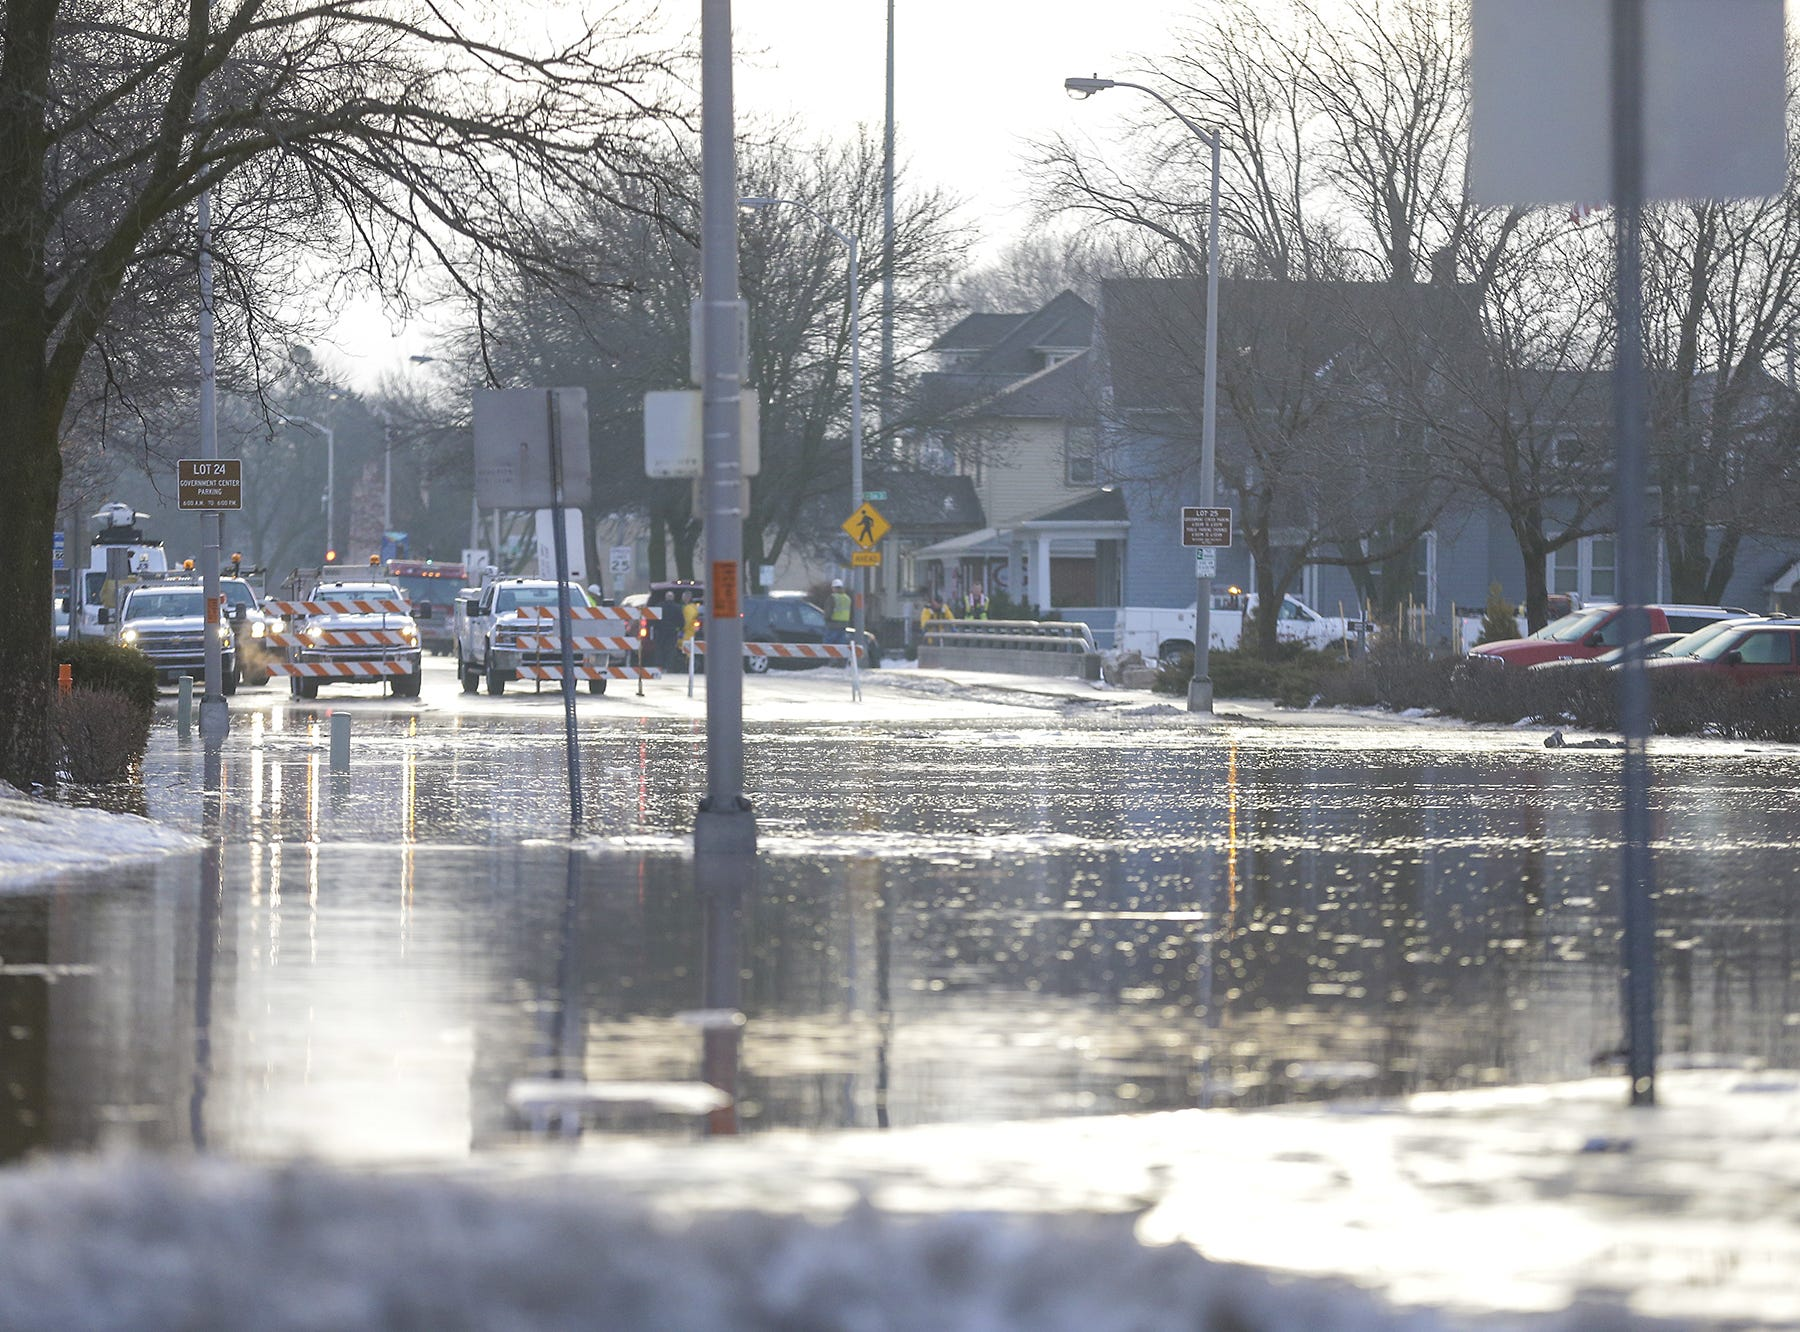 Barricades block off Western Avenue Thursday, March 14, 2019 in Fond du Lac, Wis. Ice jams on the east branch of the Fond du Lac River caused localized flooding problems in the city. Doug Raflik/USA TODAY NETWORK-Wisconsin